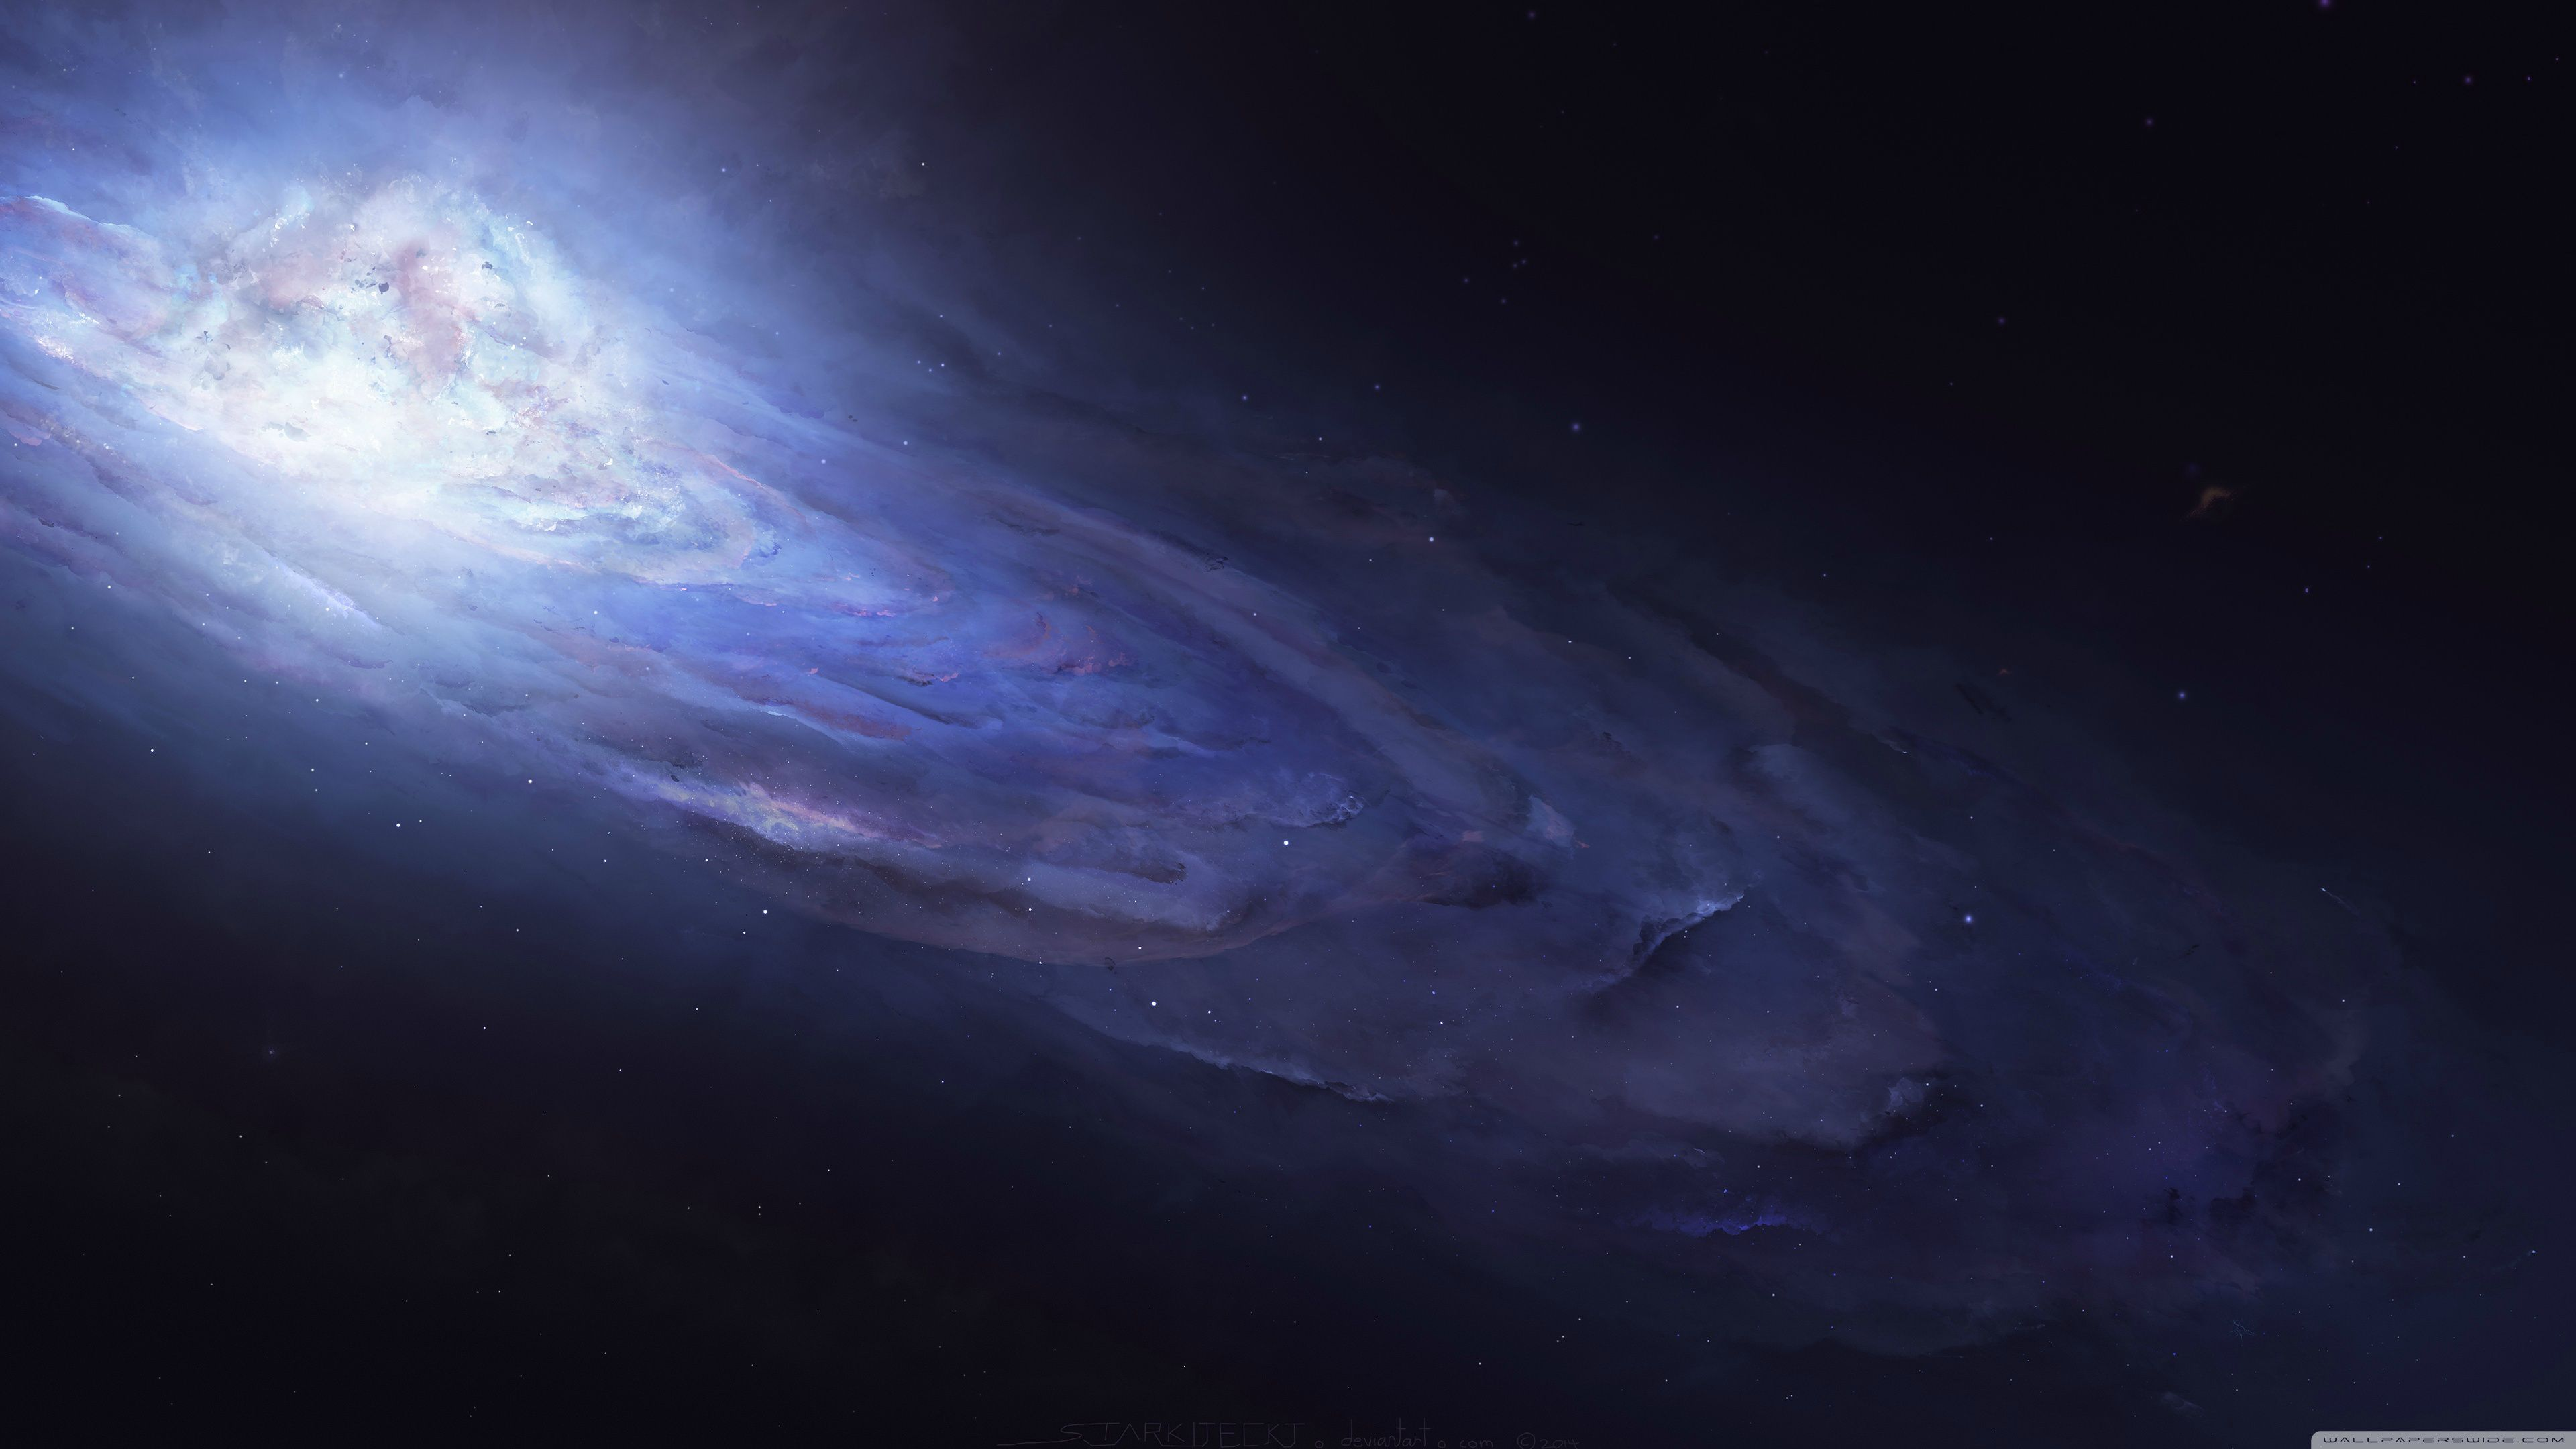 Galaxy Space Wallpaper 4k Apk Download: 4K Ultra HD Space Wallpapers, Desktop Backgrounds HD